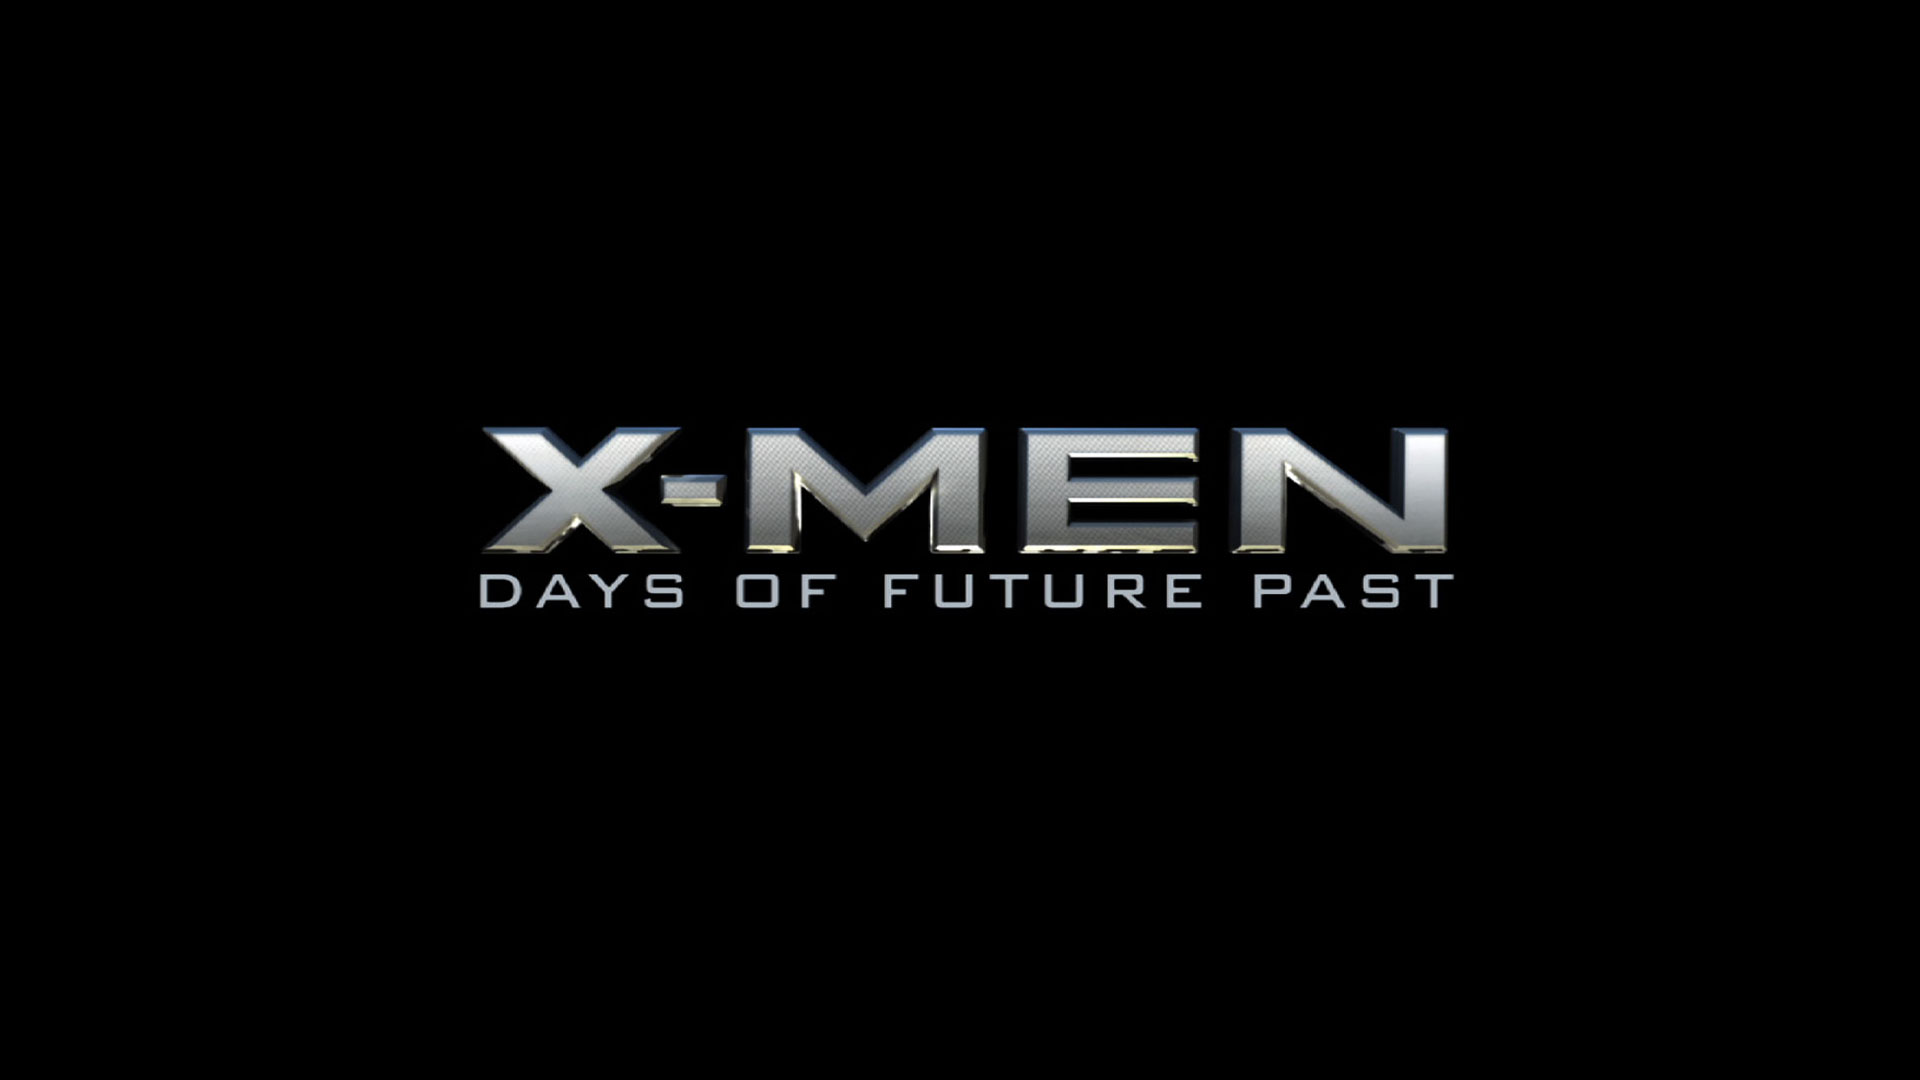 Free Download Download 2014 Wolverine Wallpapers X Men Days Of Future Past 1920x1080 For Your Desktop Mobile Tablet Explore 49 Days Of Future Past Desktop Poster Wallpapers Days Of